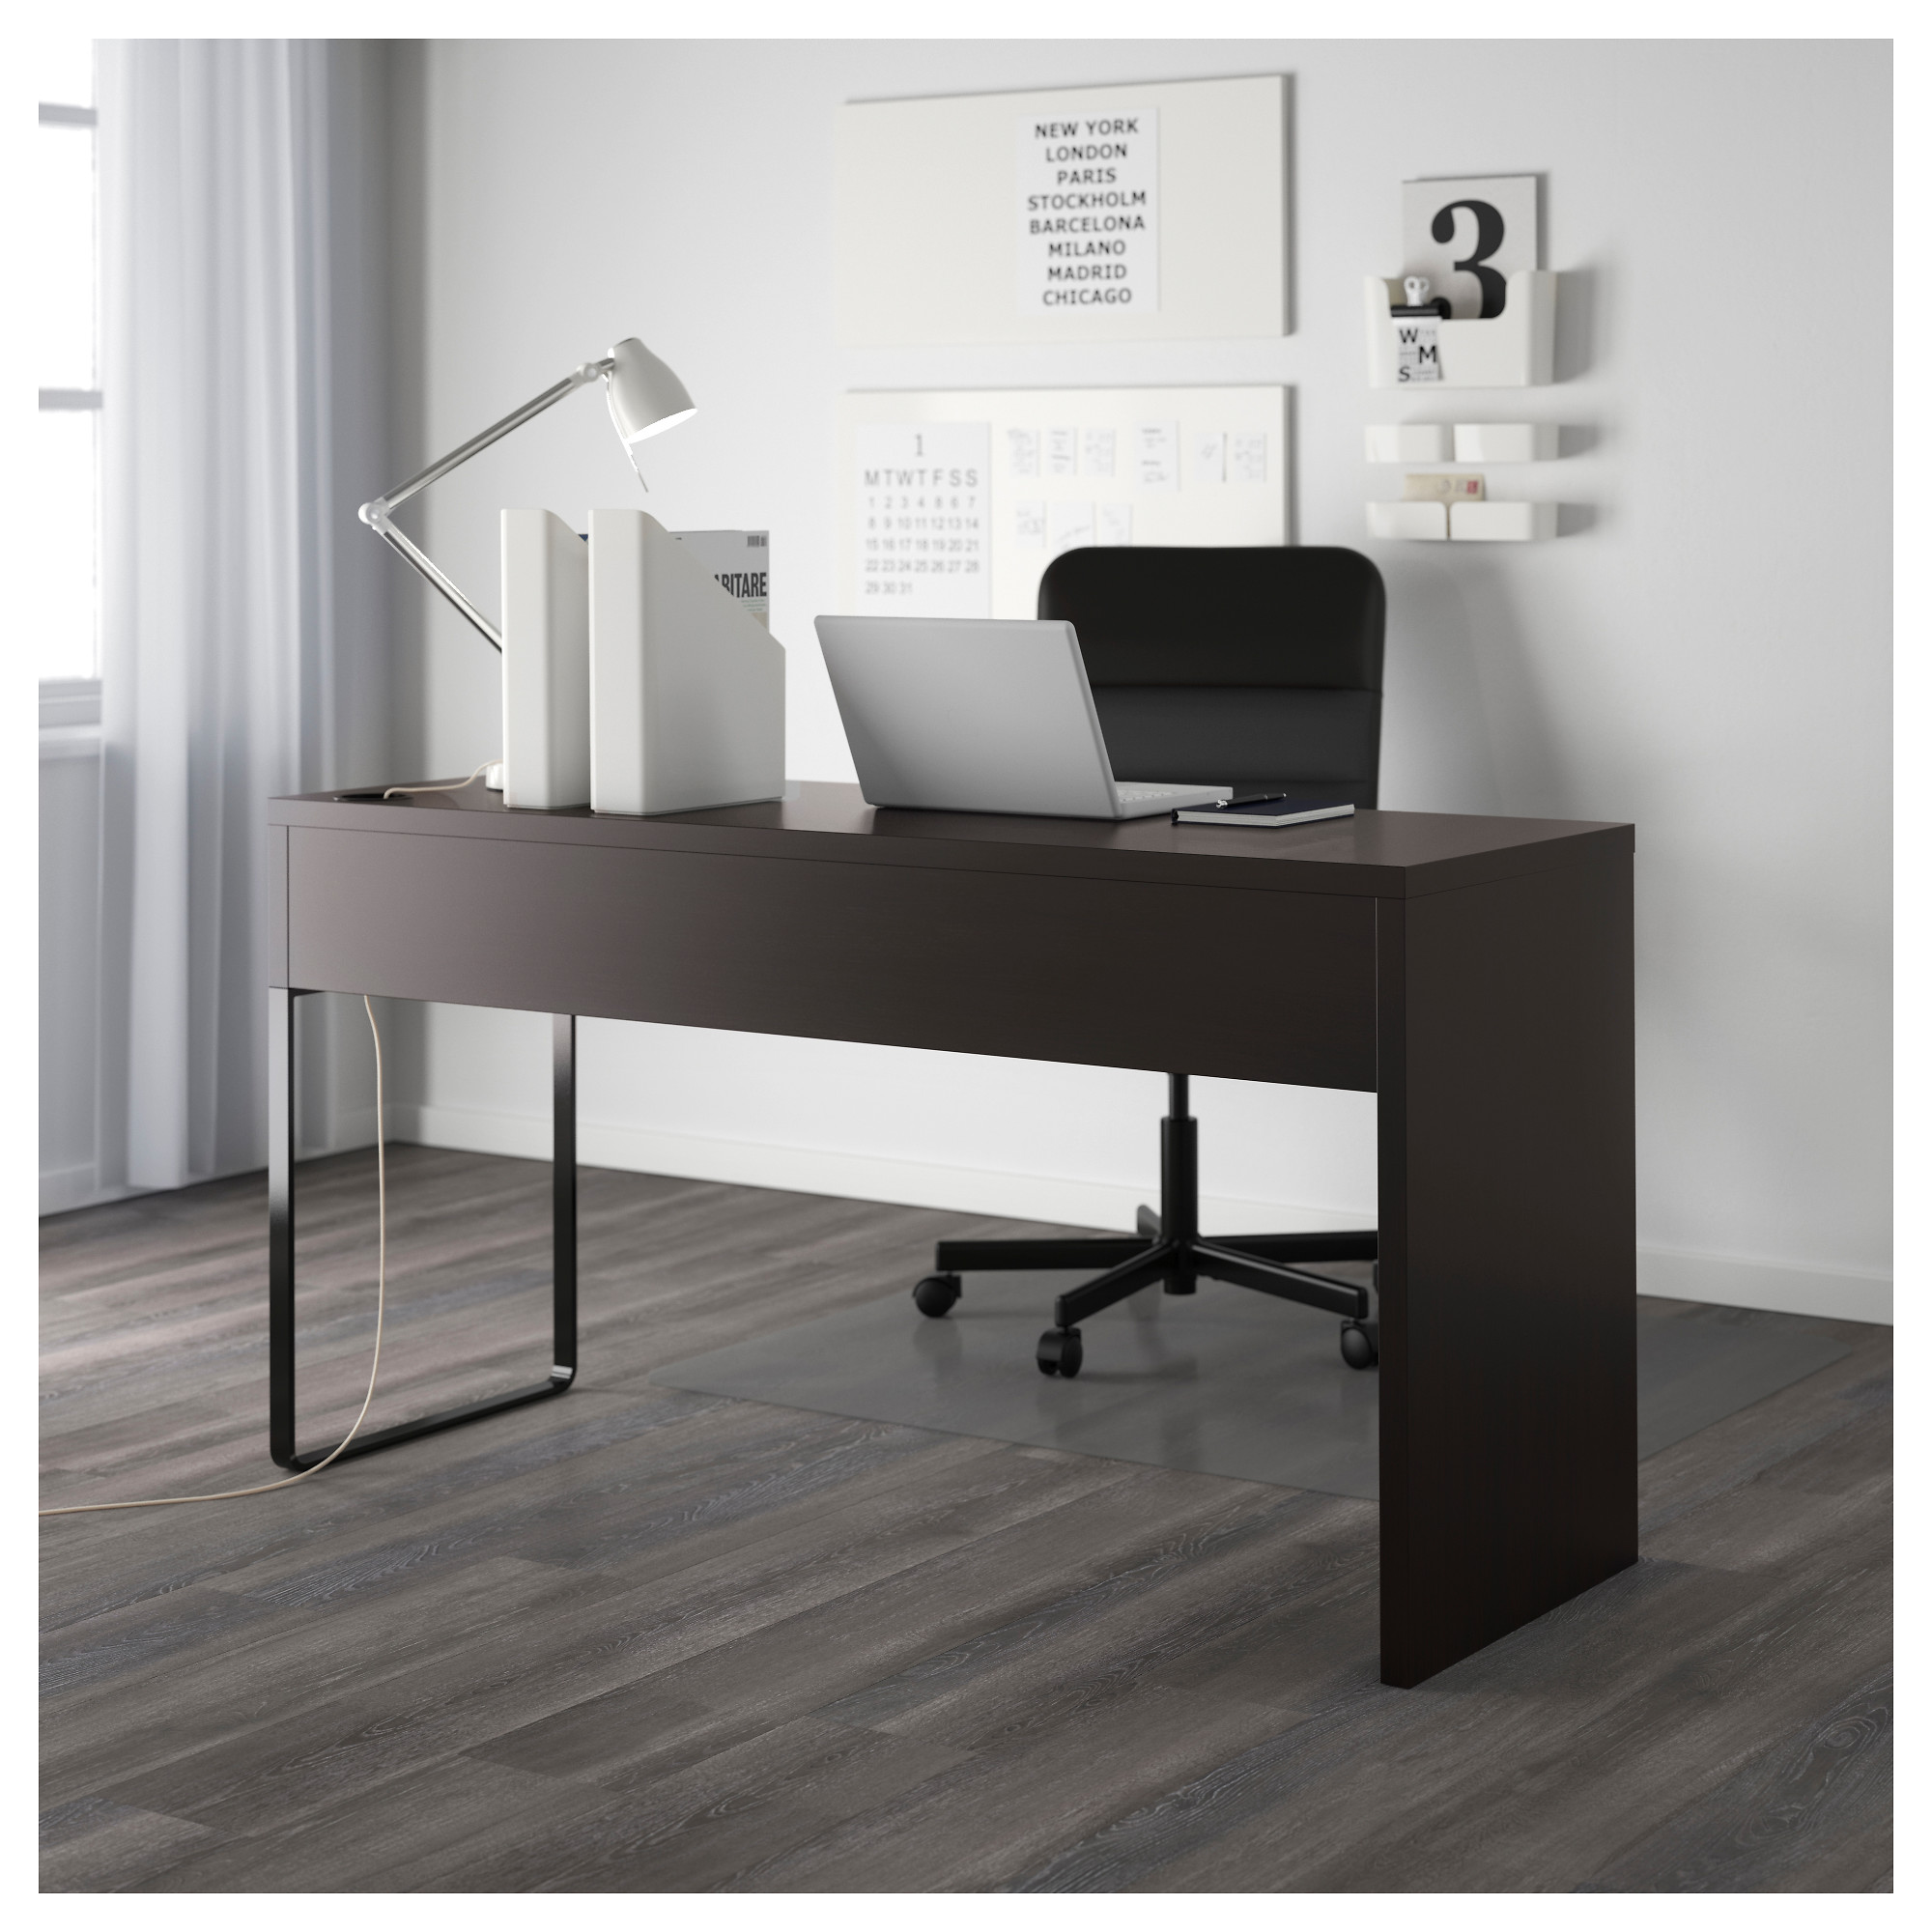 Ikea study table black - Ikea Study Table Black 21